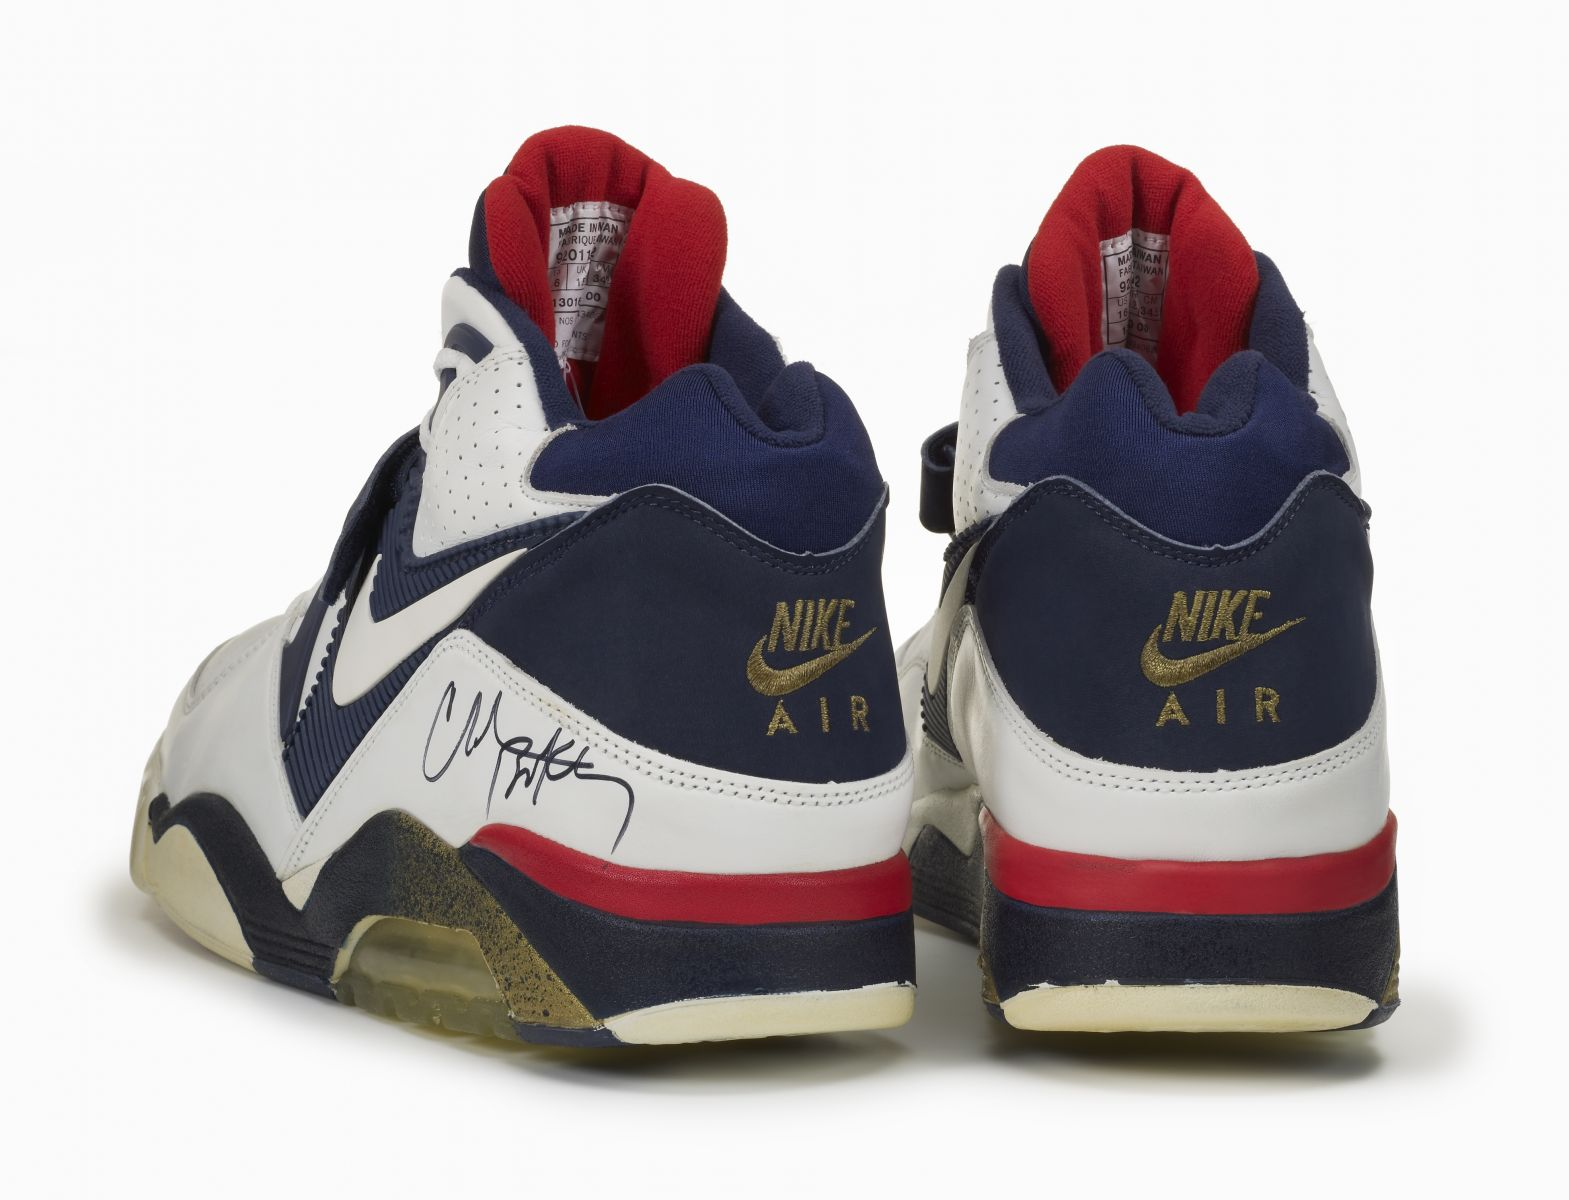 20 Designs That Changed The Game Nike Air Force 180 Low